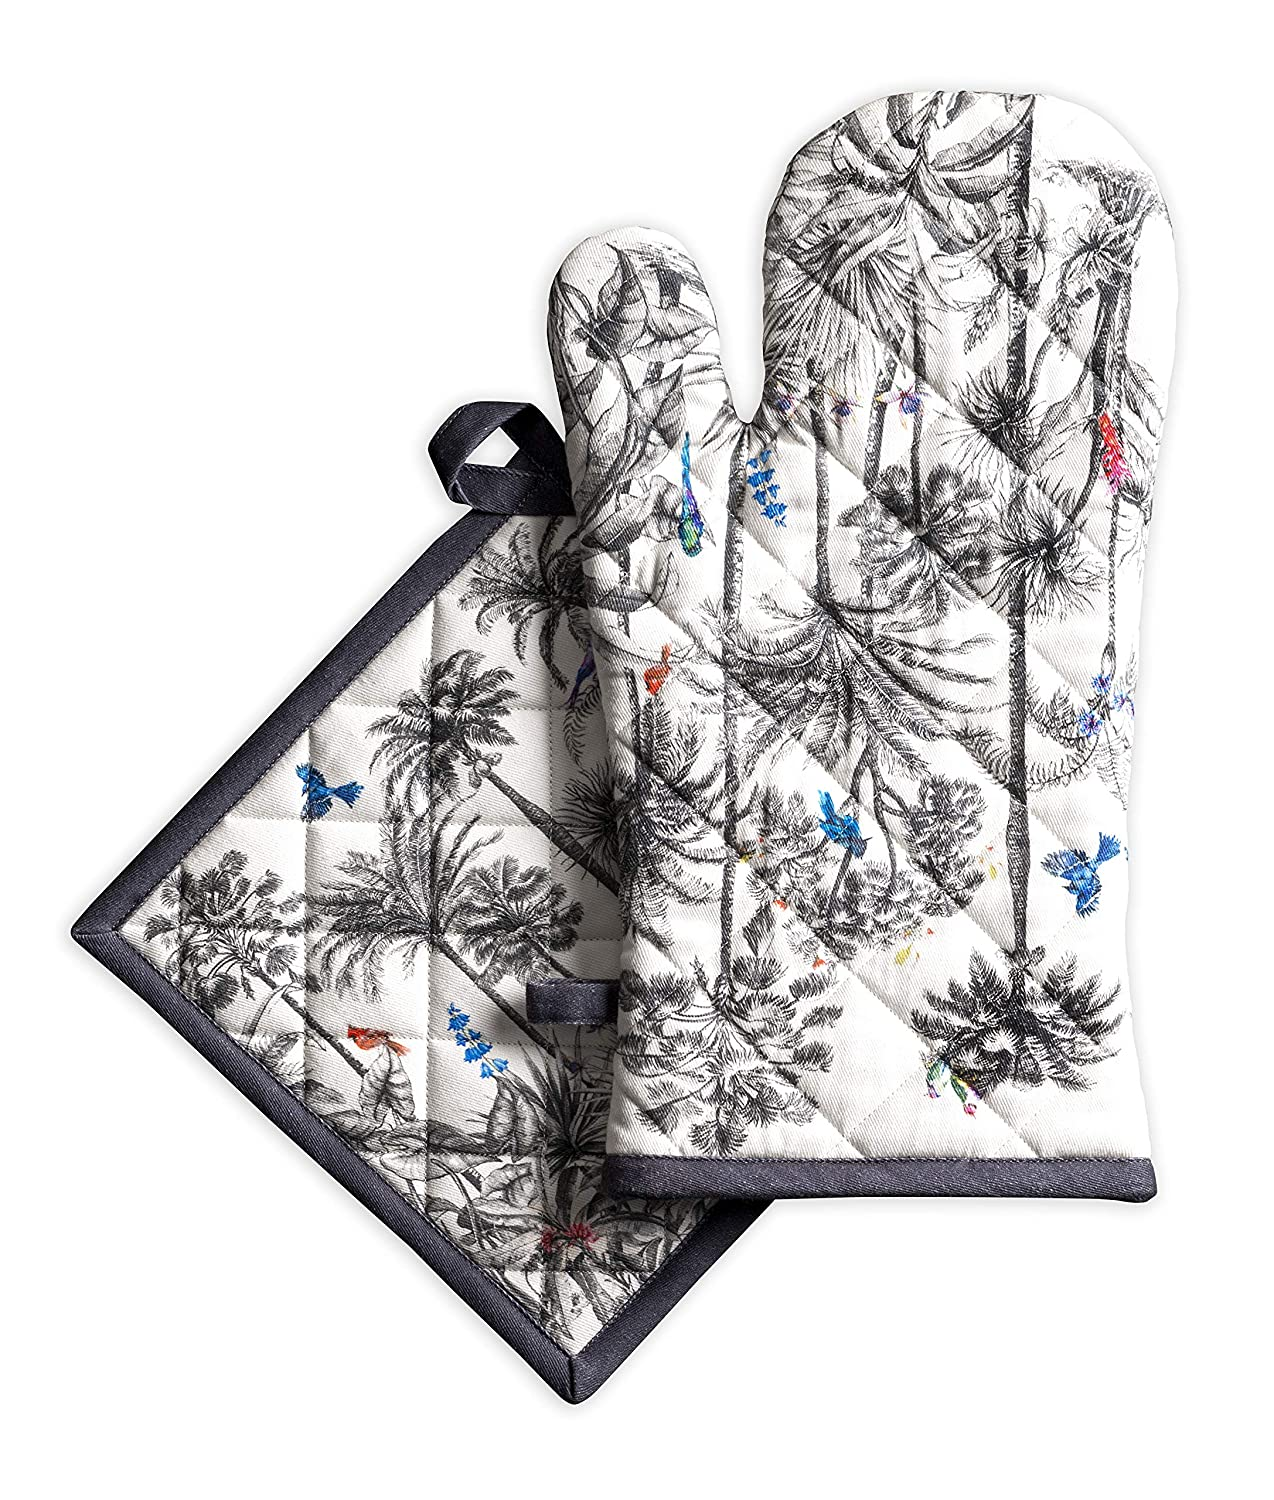 Maison d' Hermine Amazonia 100% Cotton Set of Oven Mitt (7.5 Inch by 13 Inch) and Pot Holder (8 Inch by 8 Inch).